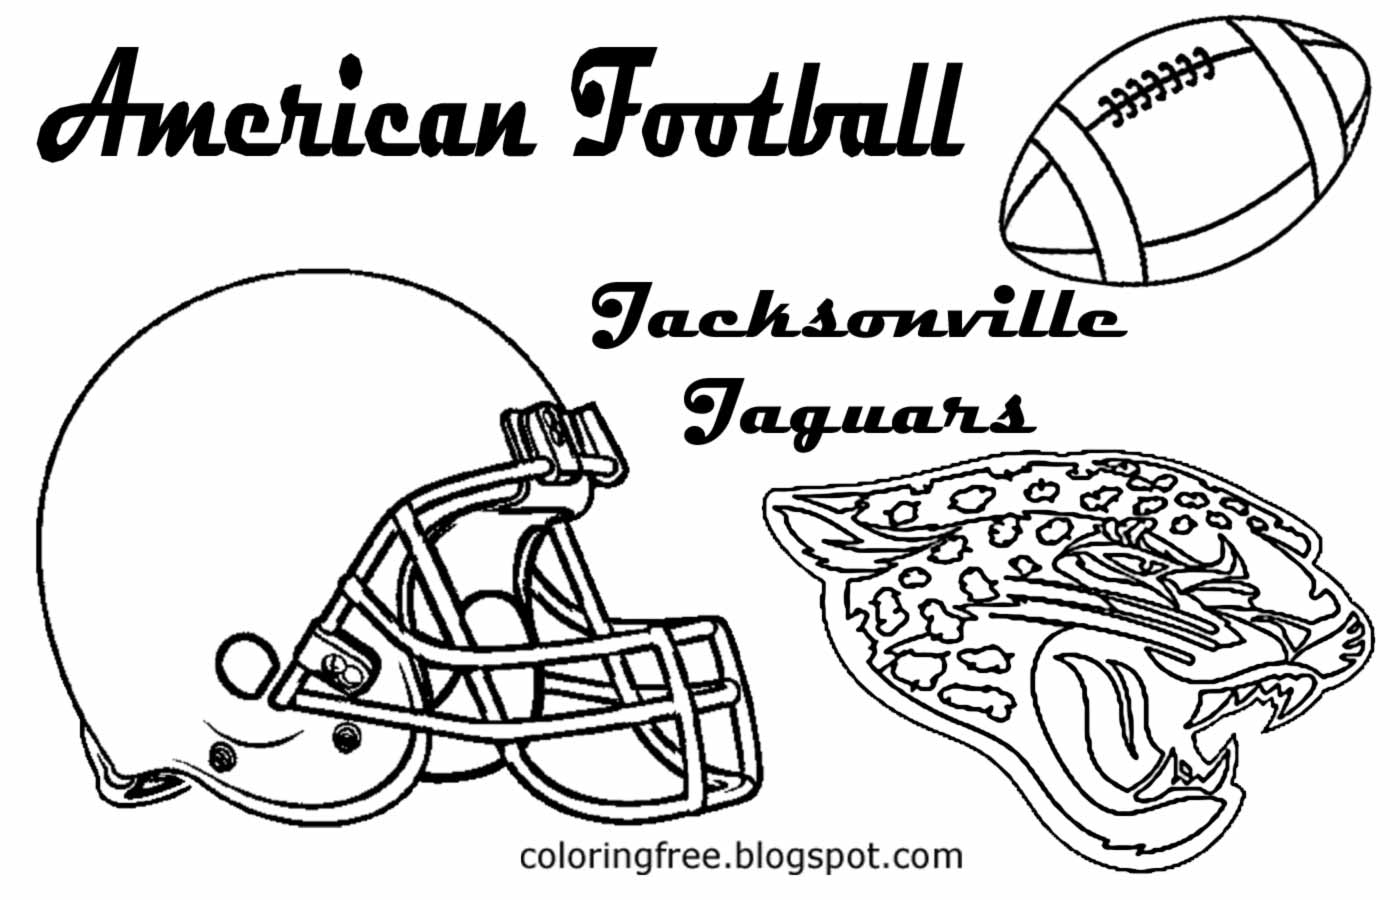 jacksonville jaguars coloring pages new logo | Free Coloring Pages Printable Pictures To Color Kids ...